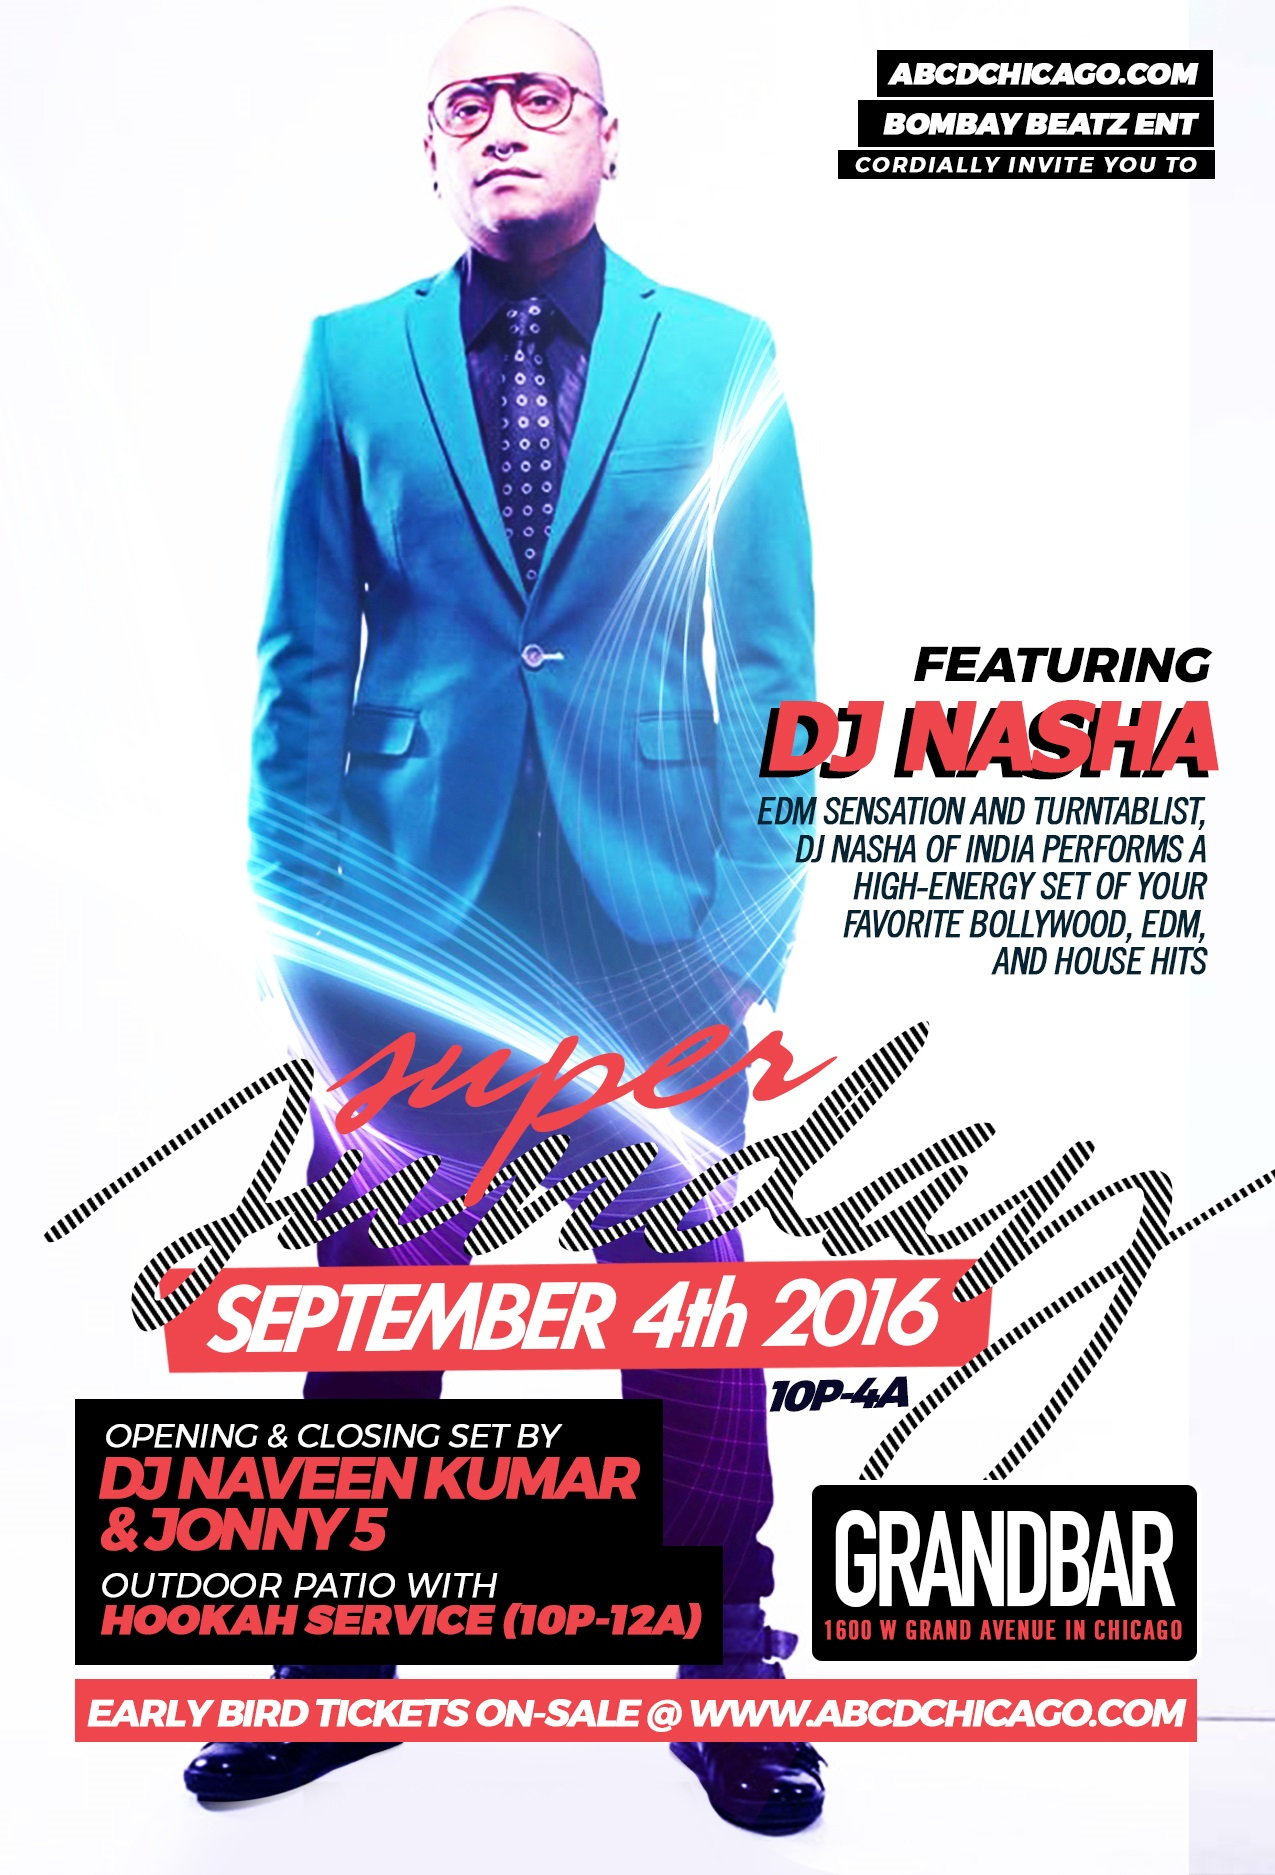 Super Sunday w/ India's DJ Nasha!